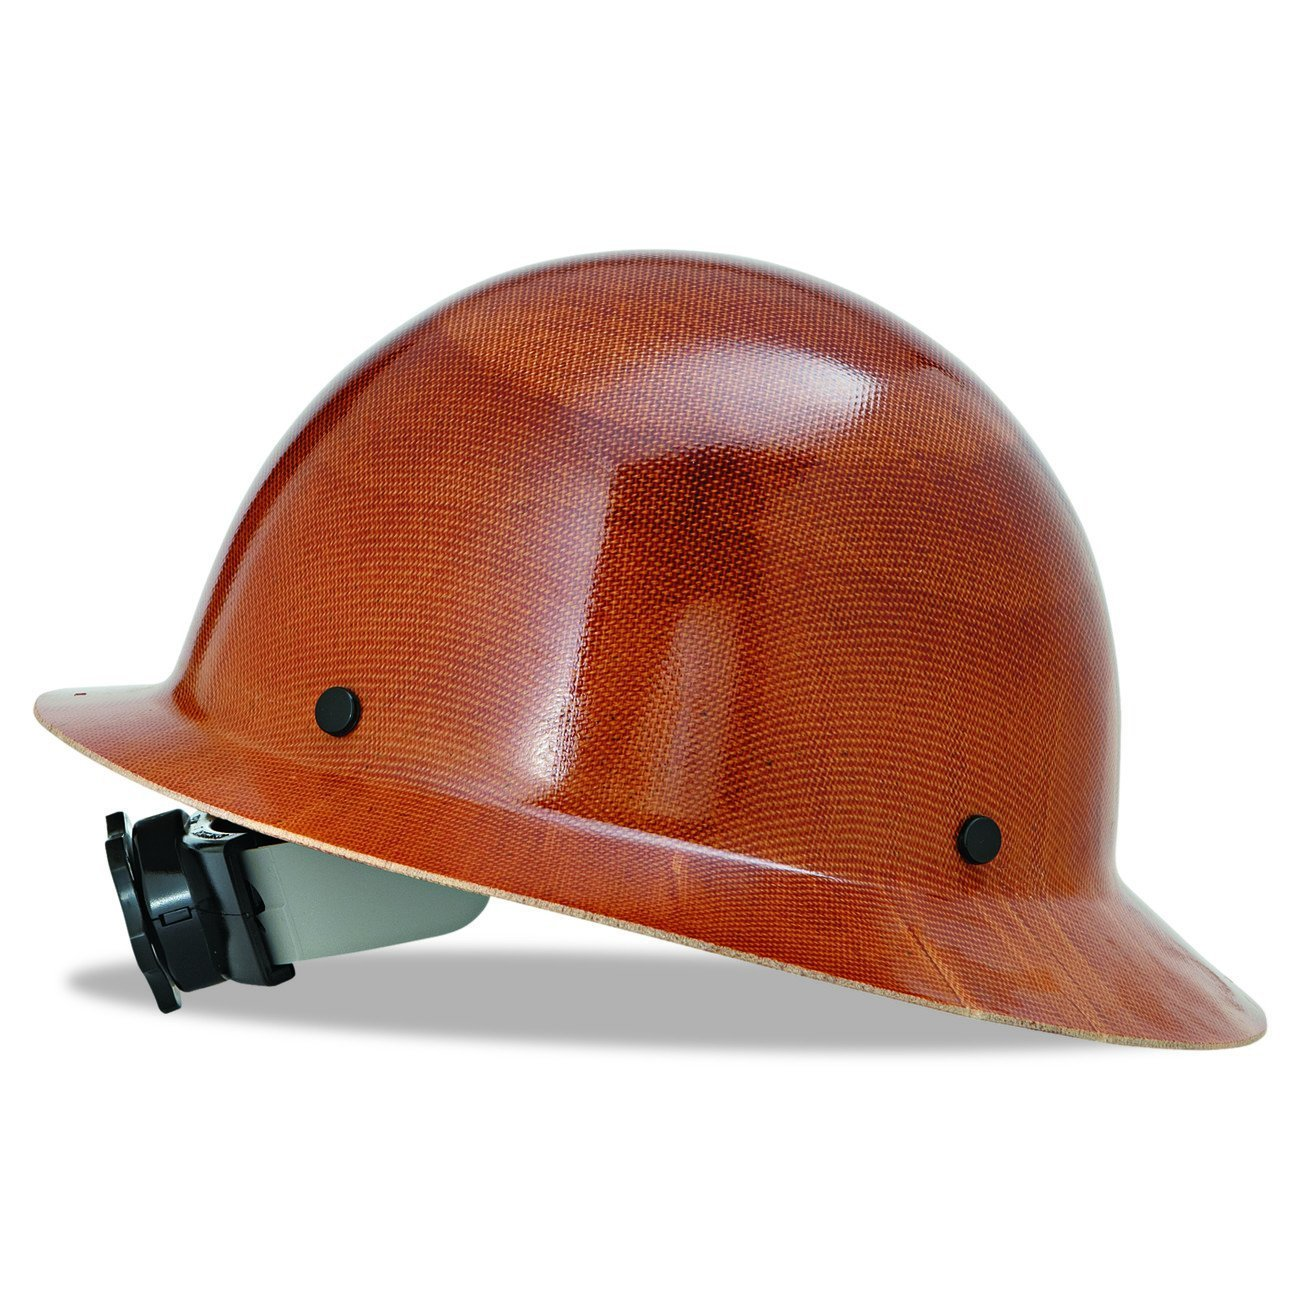 MSA 475407 Natural Tan Skullgard Hard Hat with Fas-Trac Suspension by MSA